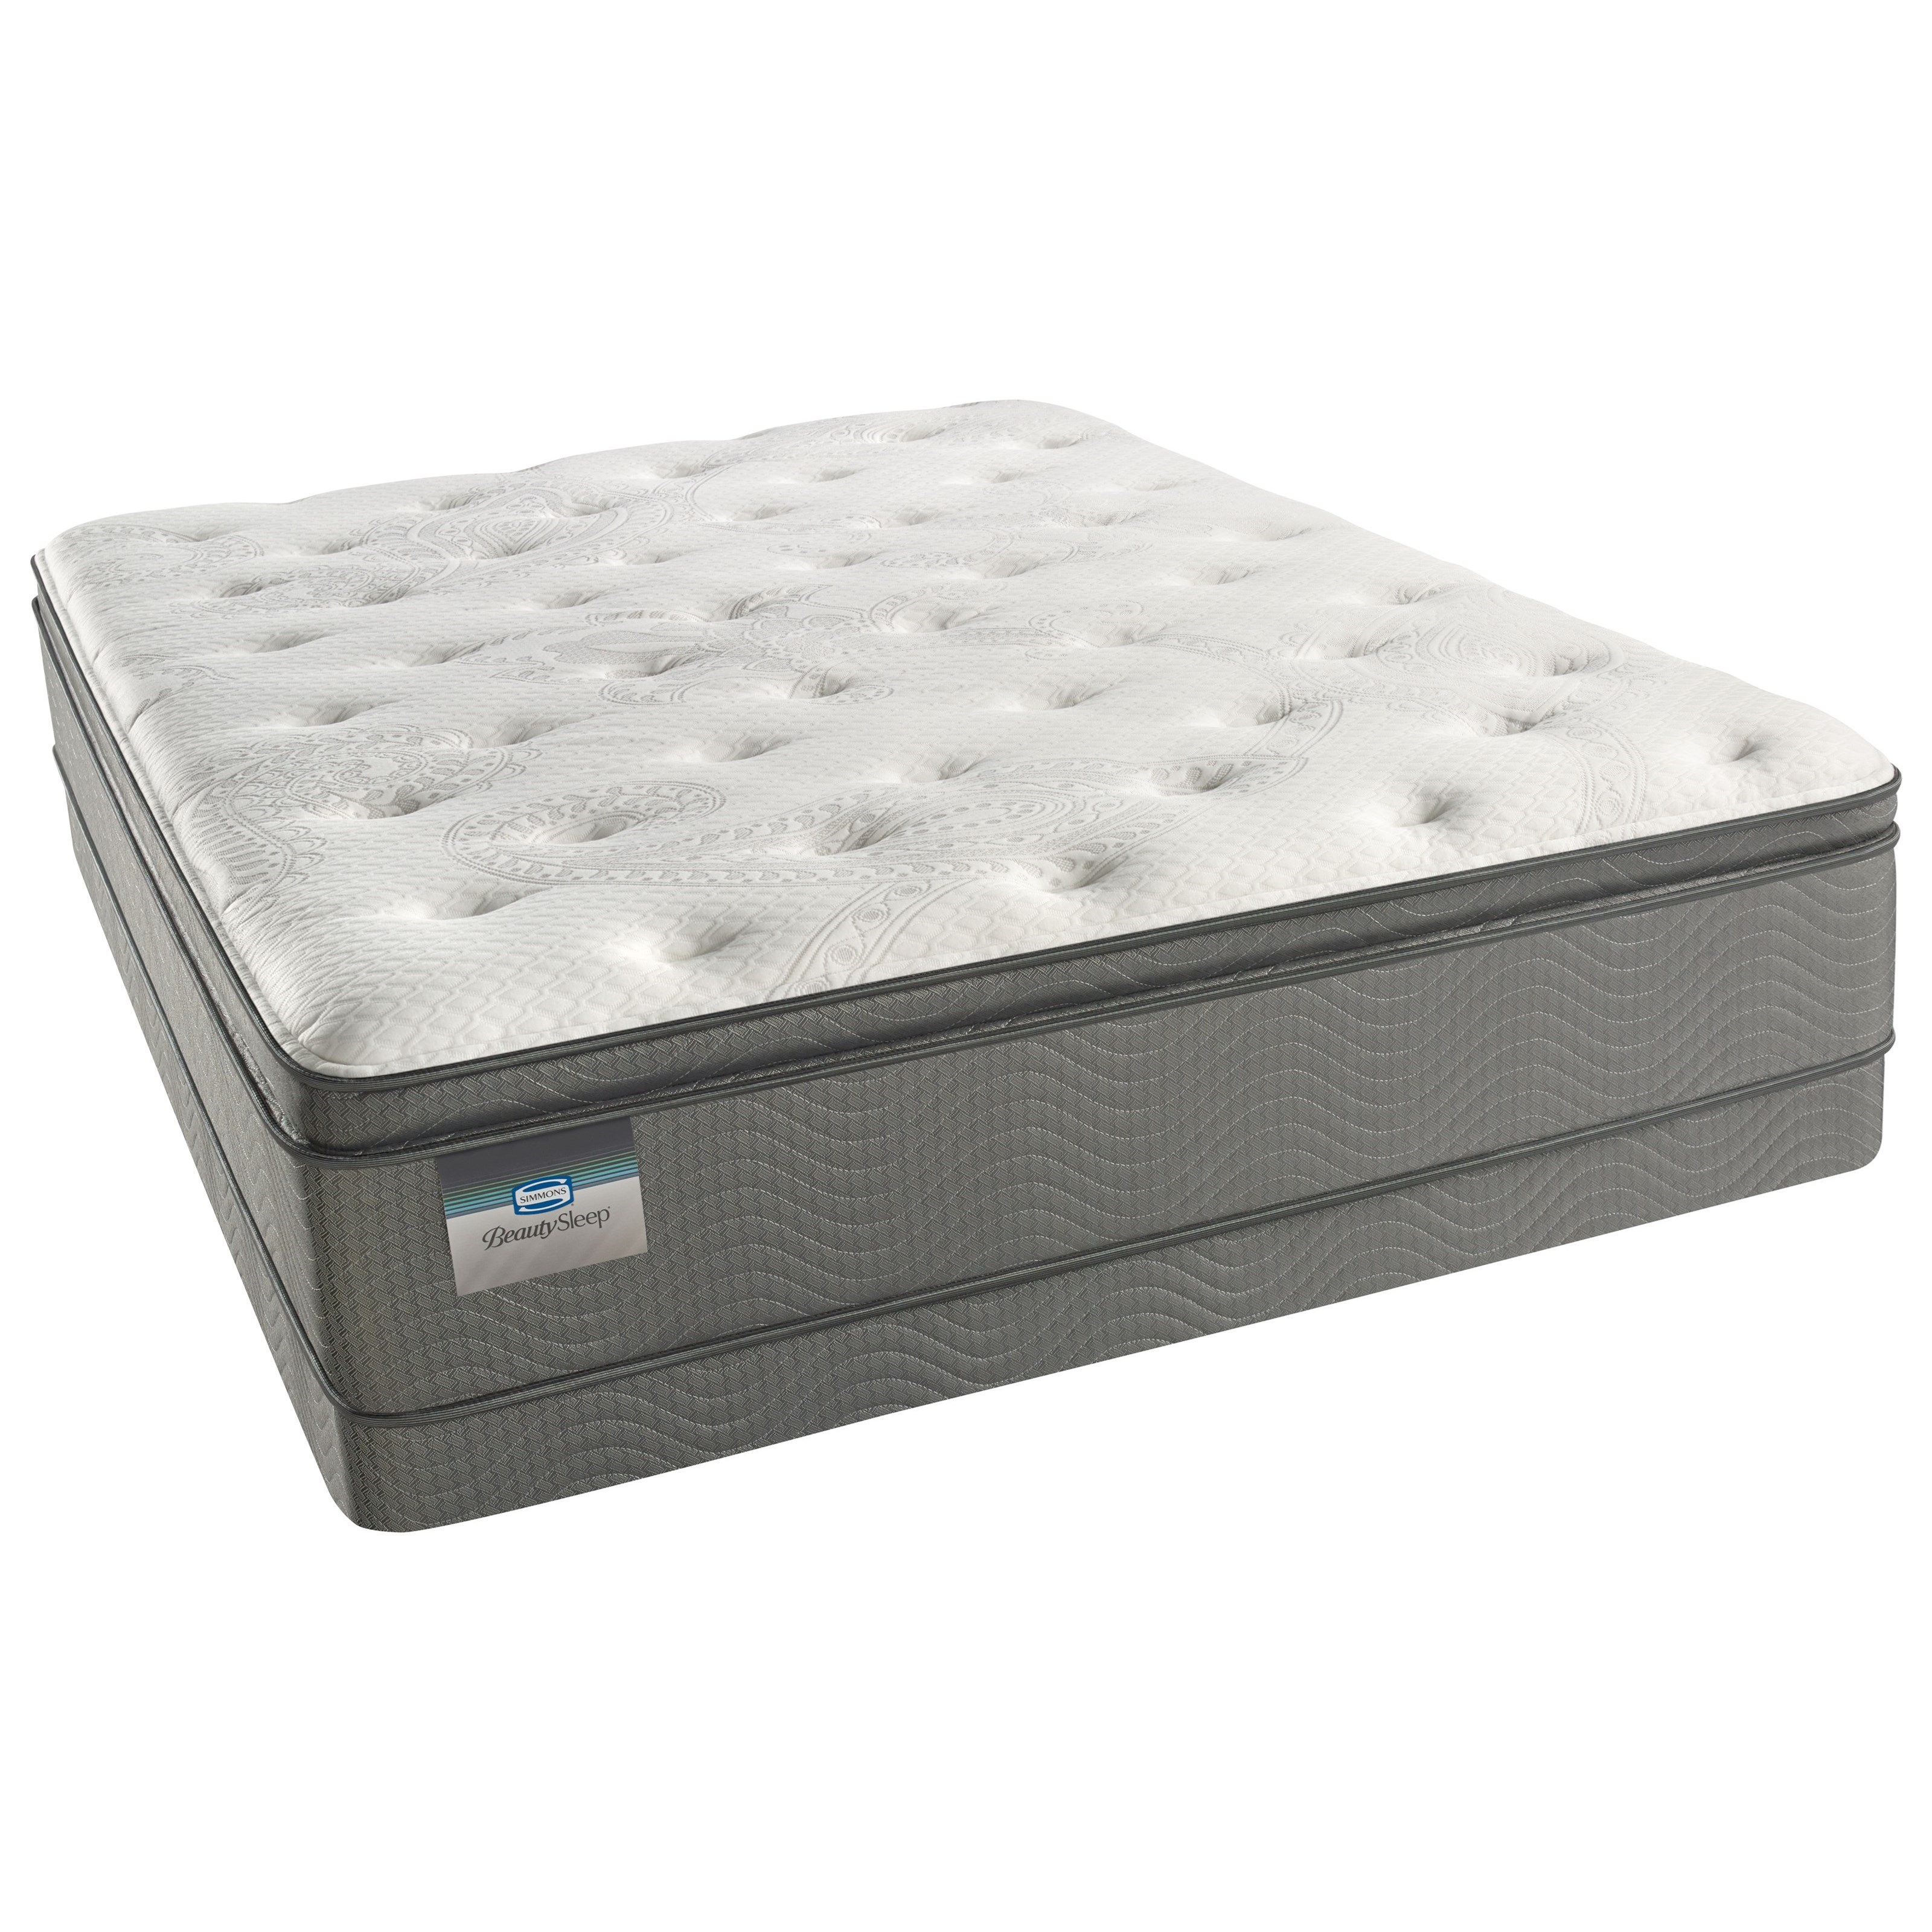 Beautyrest Beautysleep Twin XL Set